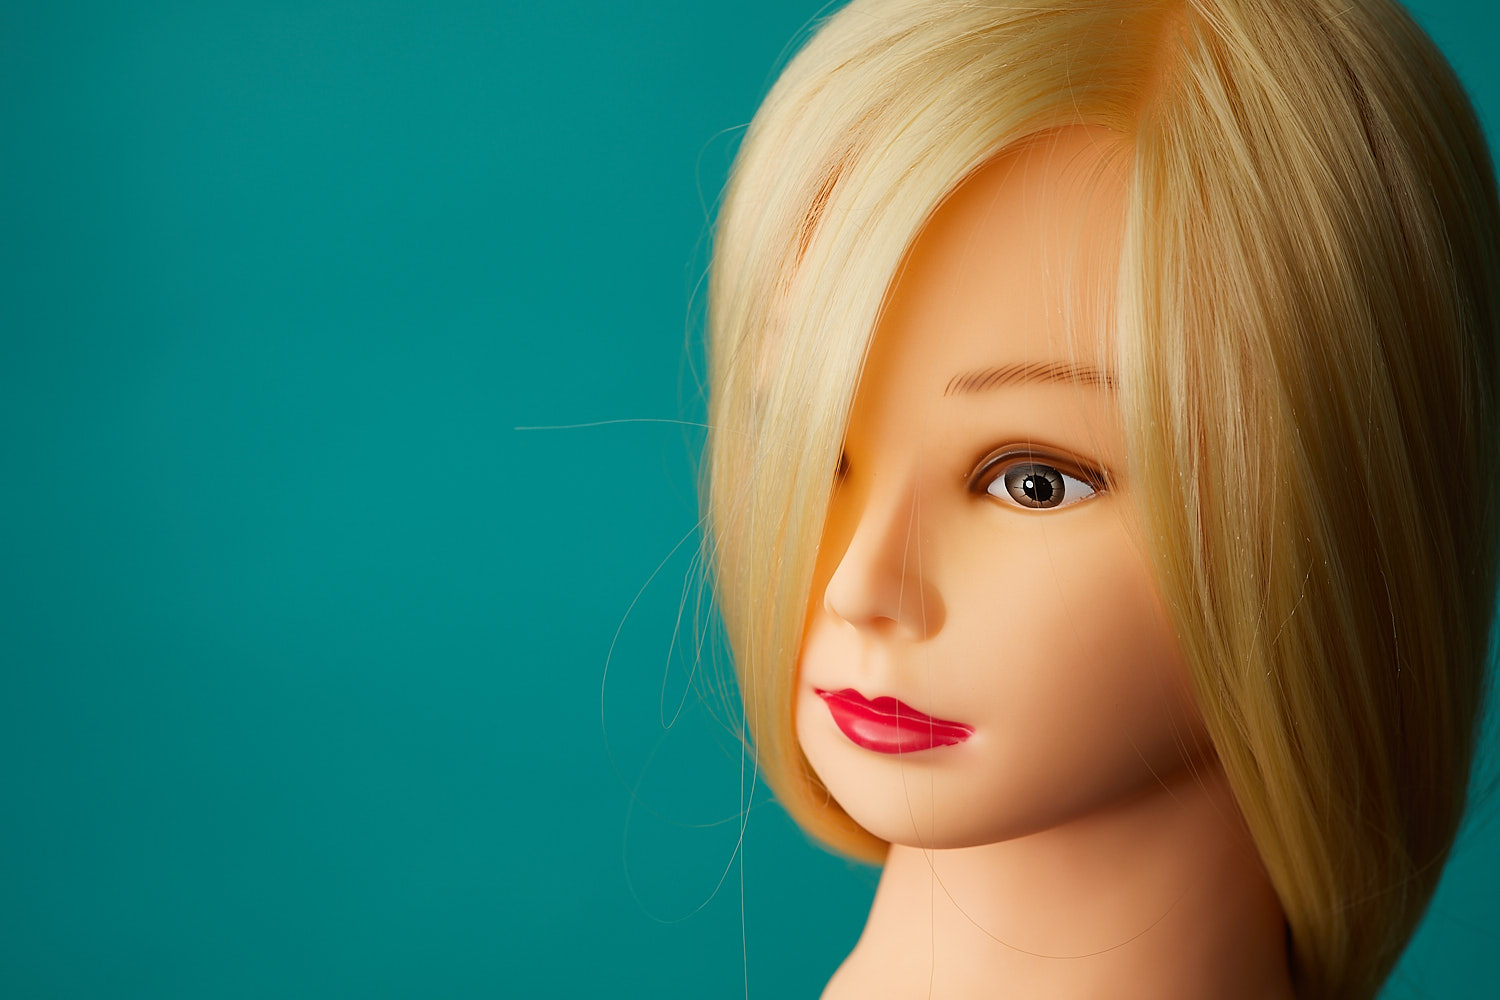 A mannequin is great when starting in off-camera flash. This image is shot with a soft box against a blue background.